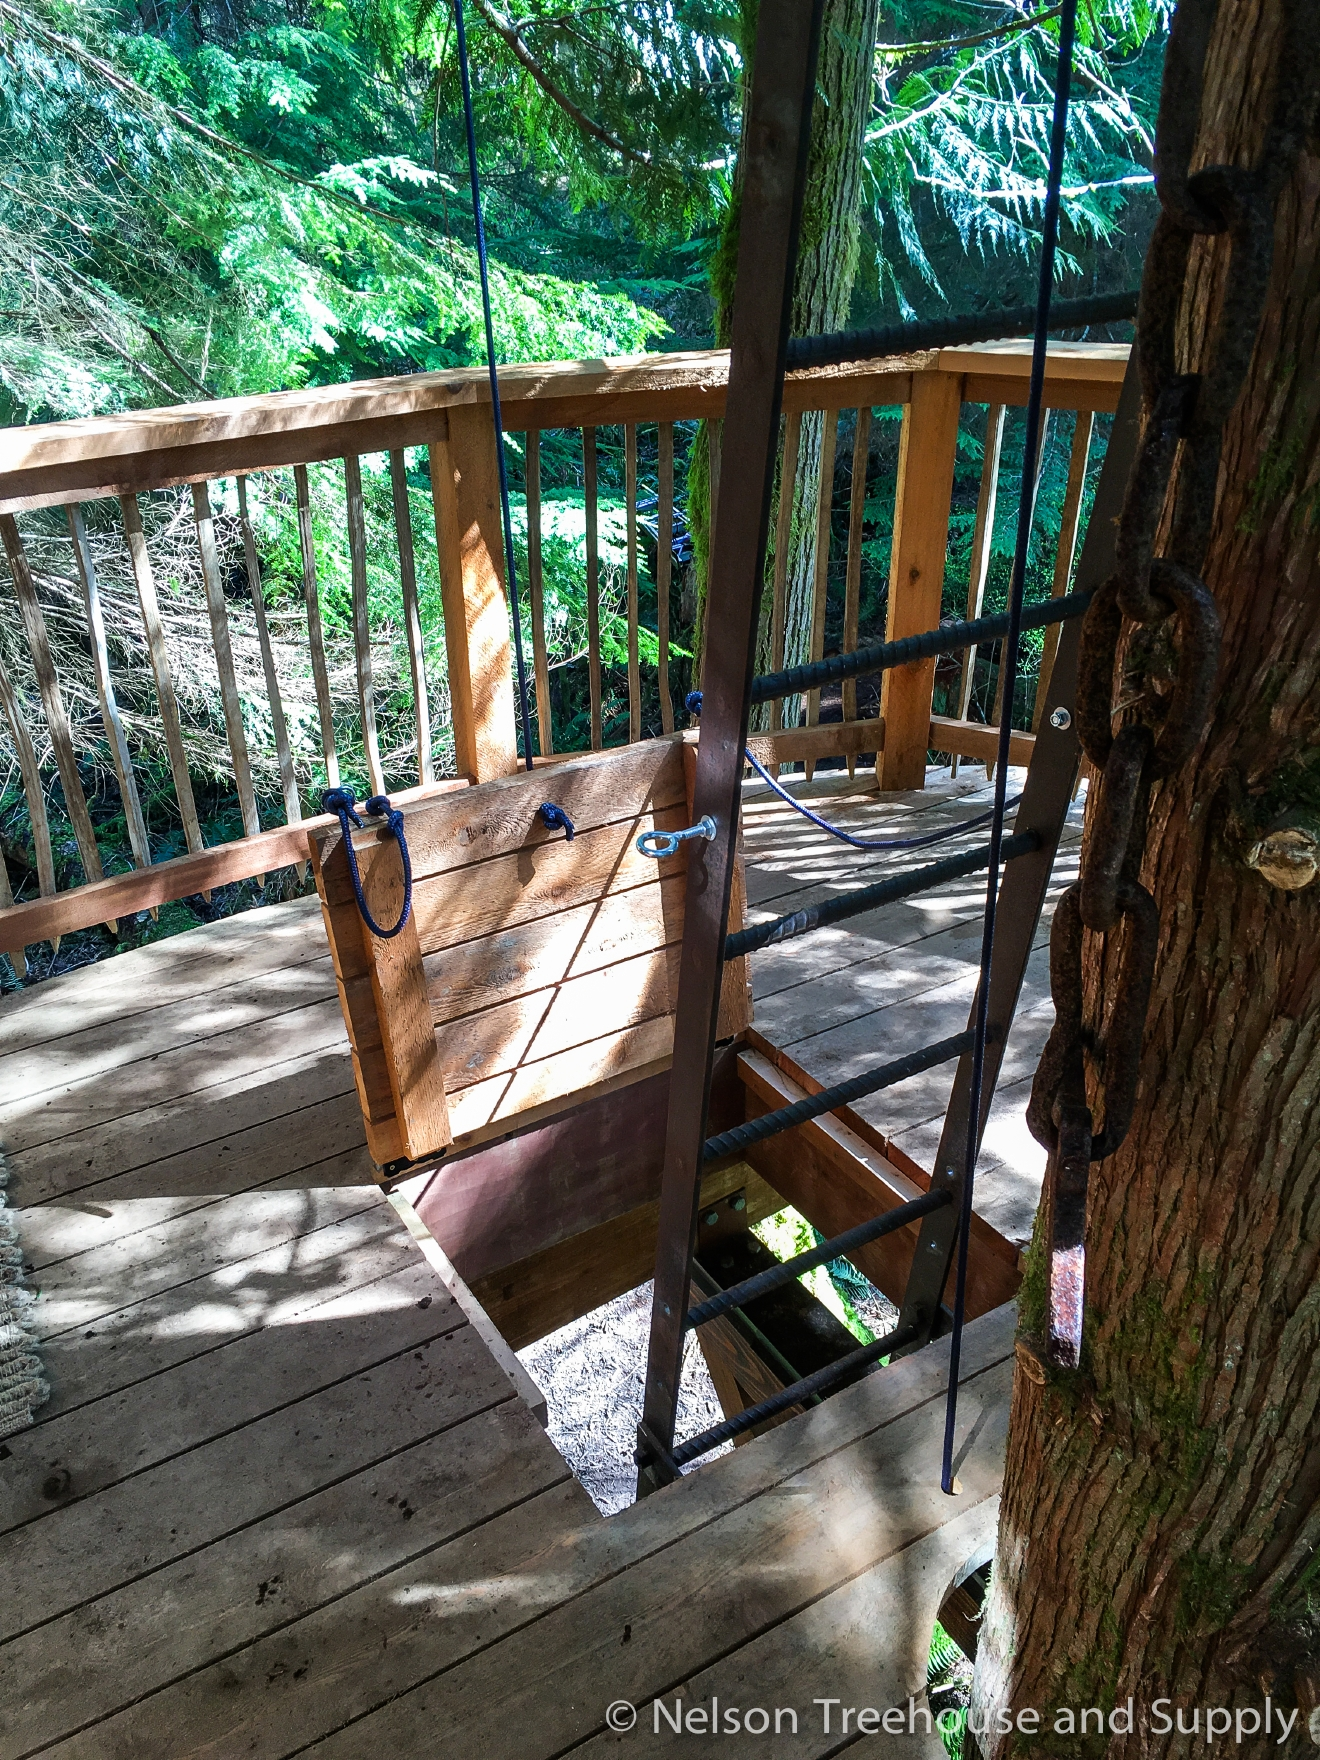 Many of us here in the PNW are familiar with 'Treehouse Masters', the Animal Planet show where Fall City's Pete Nelson and crew travel across the country to build incredible treehouses for a lucky few. With the show's next season right around the corner (Jan. 6), and the local connection - we thought we'd take a look at all the treehouses they built in 2016. We'll do one 'Treehouse of the Day' a day until we run out!   Take a look at this Adventure Headquarters the team built right here in Washington state (Season 6, Ep. 2). This treehouse sits in the backyard of a thrill-seeking couple looking for the treehouse of their adventurous dreams! It sit 15 feet high in three cedars, with a wraparound deck that provides 360 degree of stunning views. Full episodes at animalplanet.com. (Image: Animal Planet)